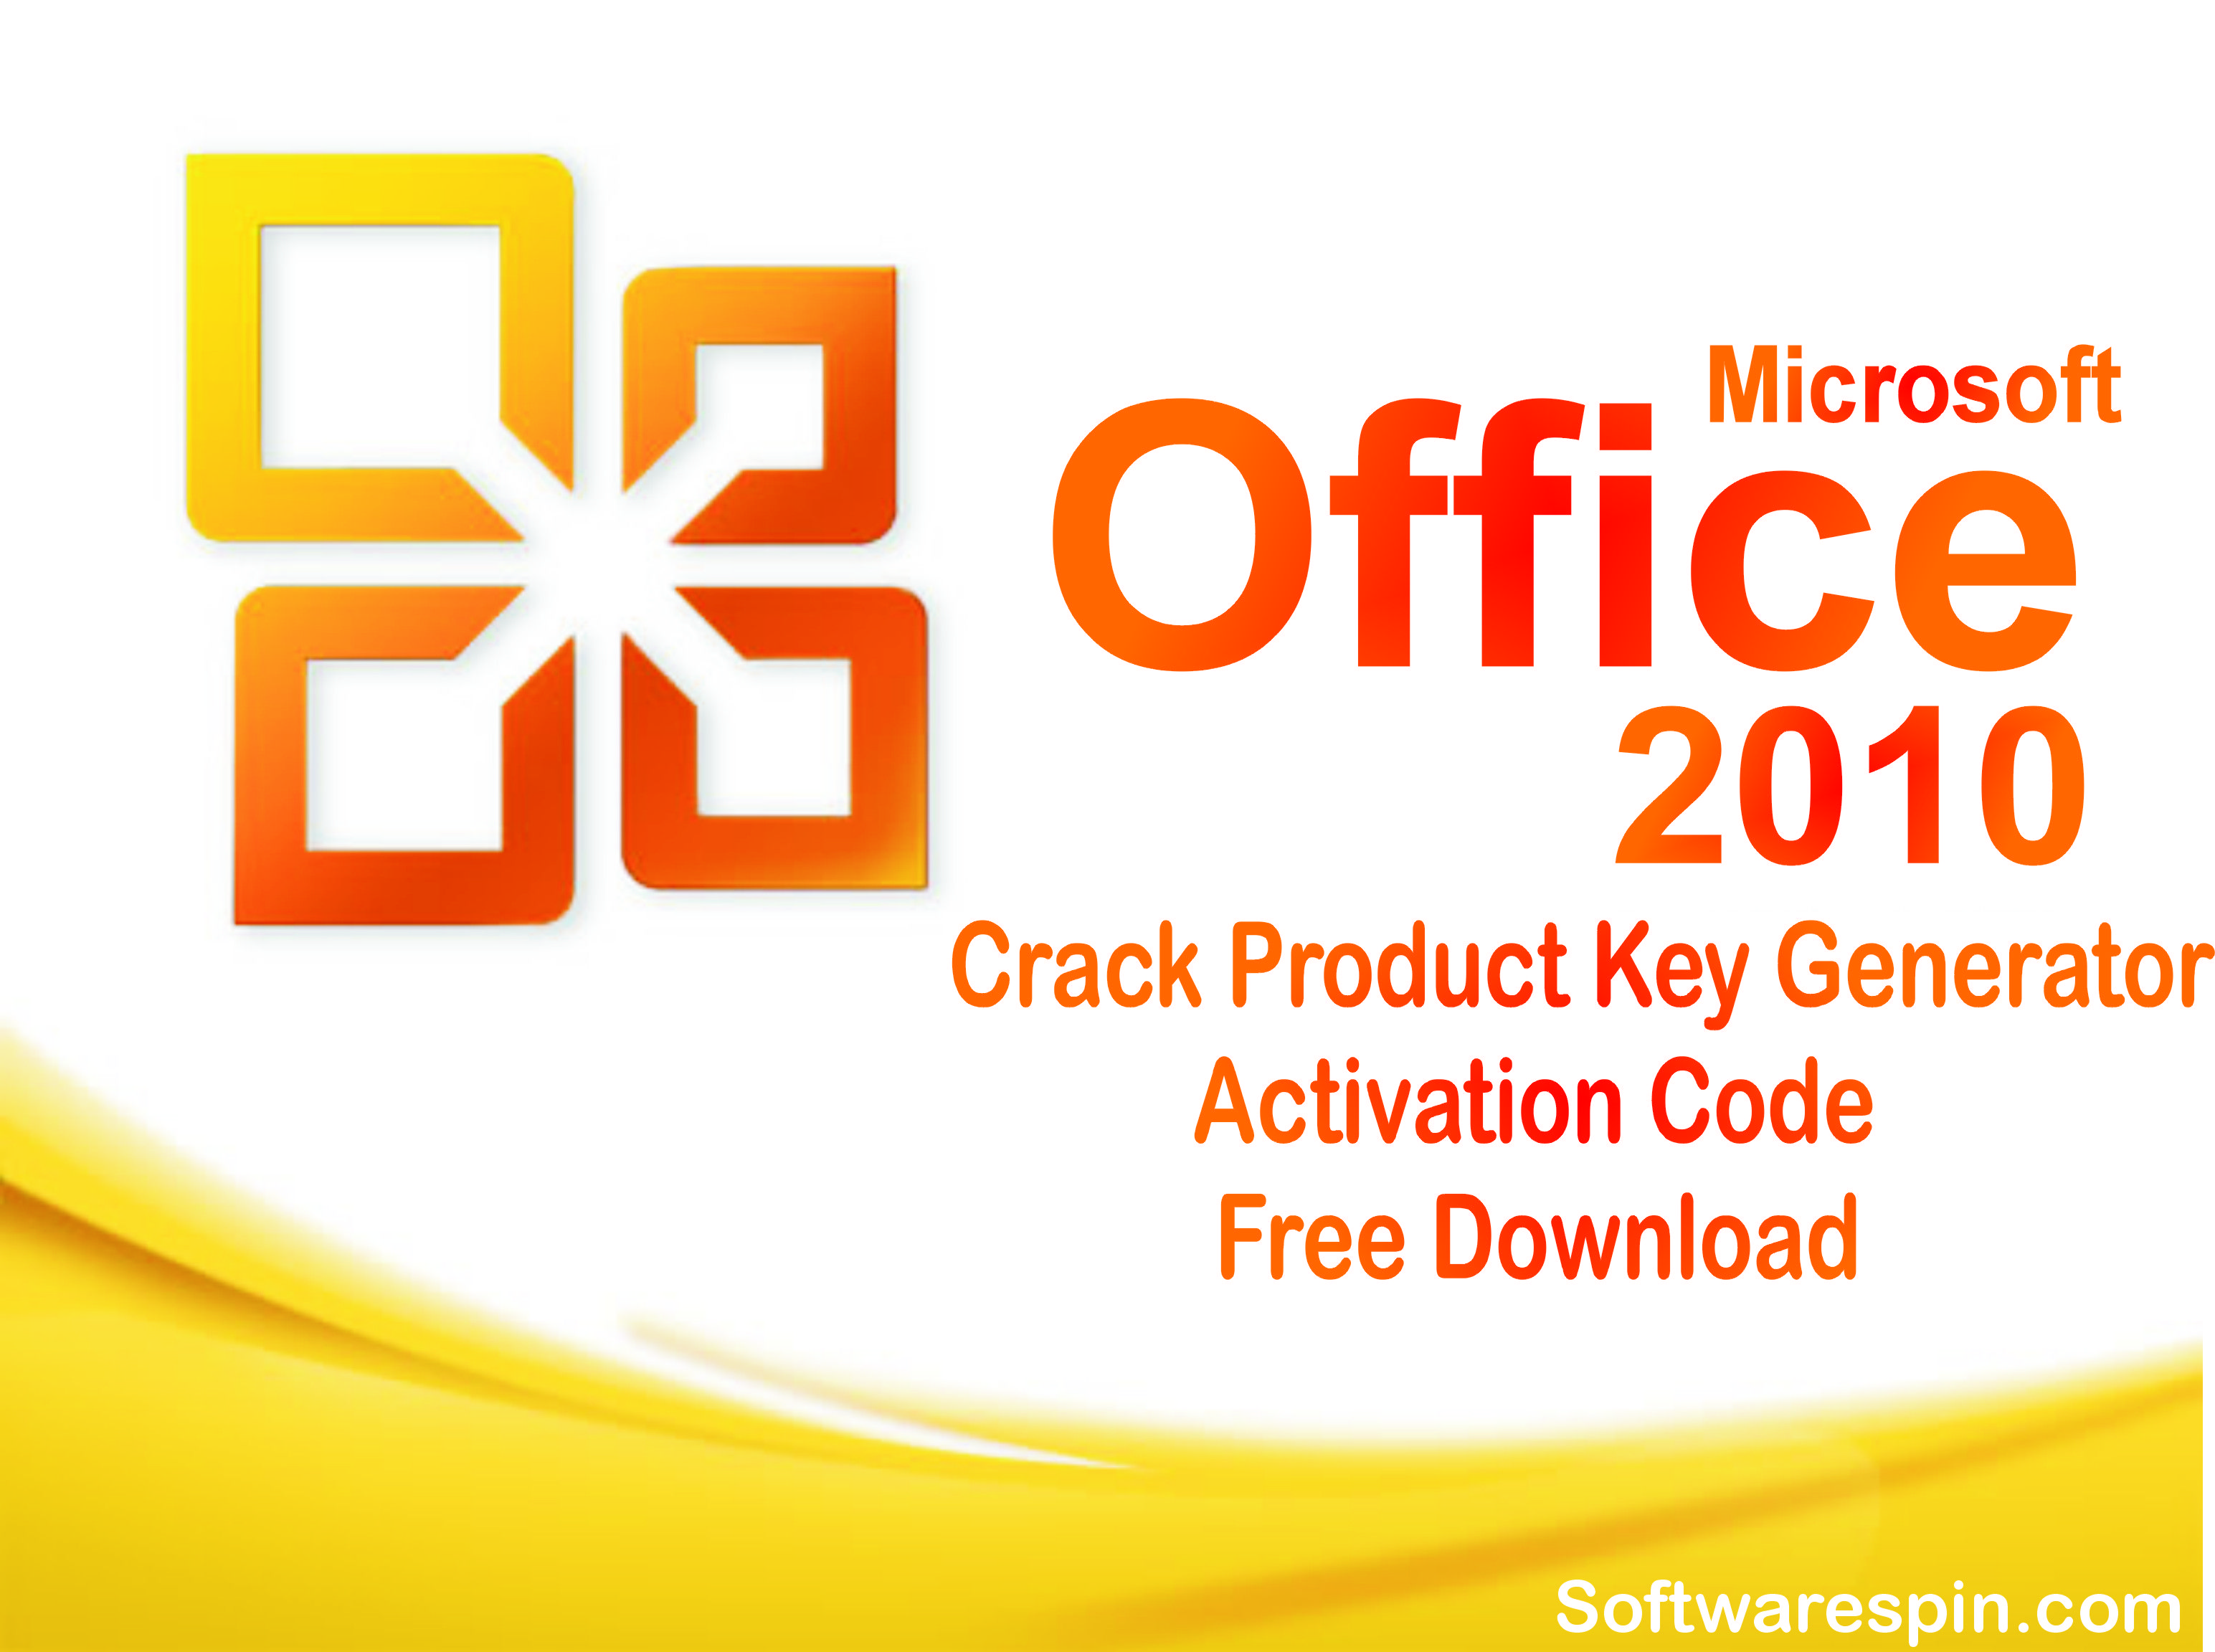 ms office 2010 crack product key free download